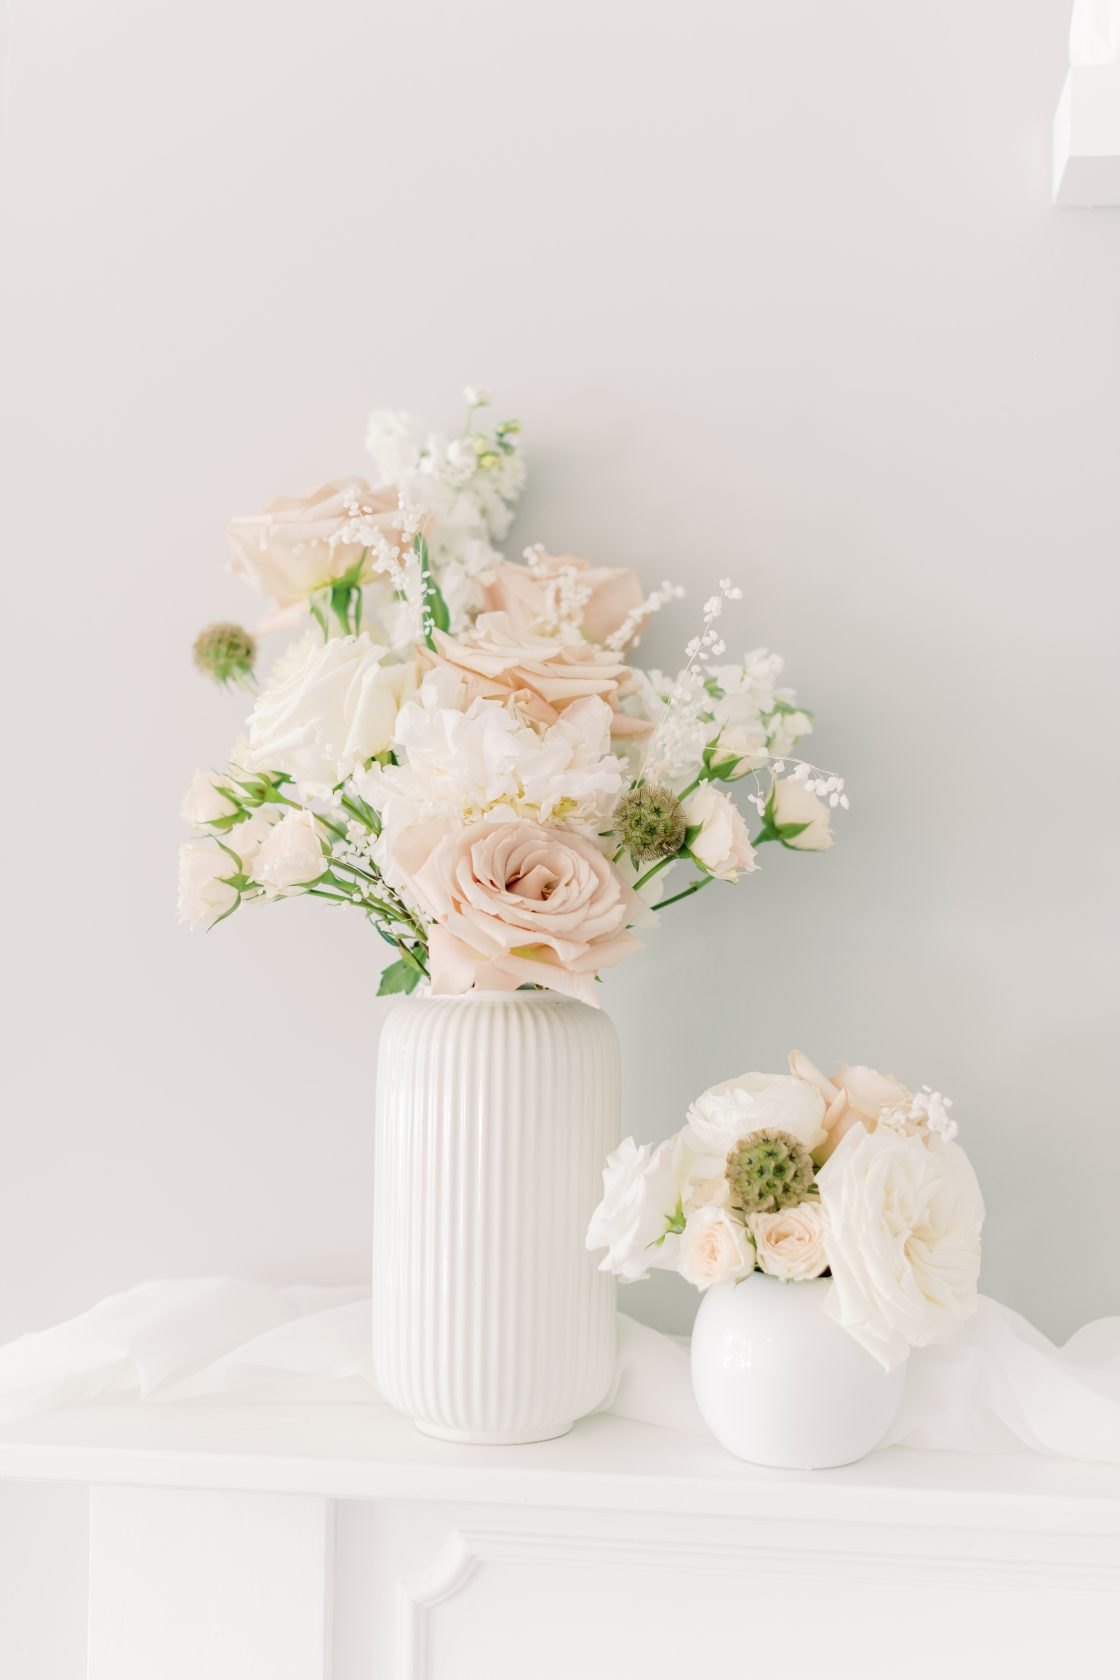 White Blush Rose Centerpiece